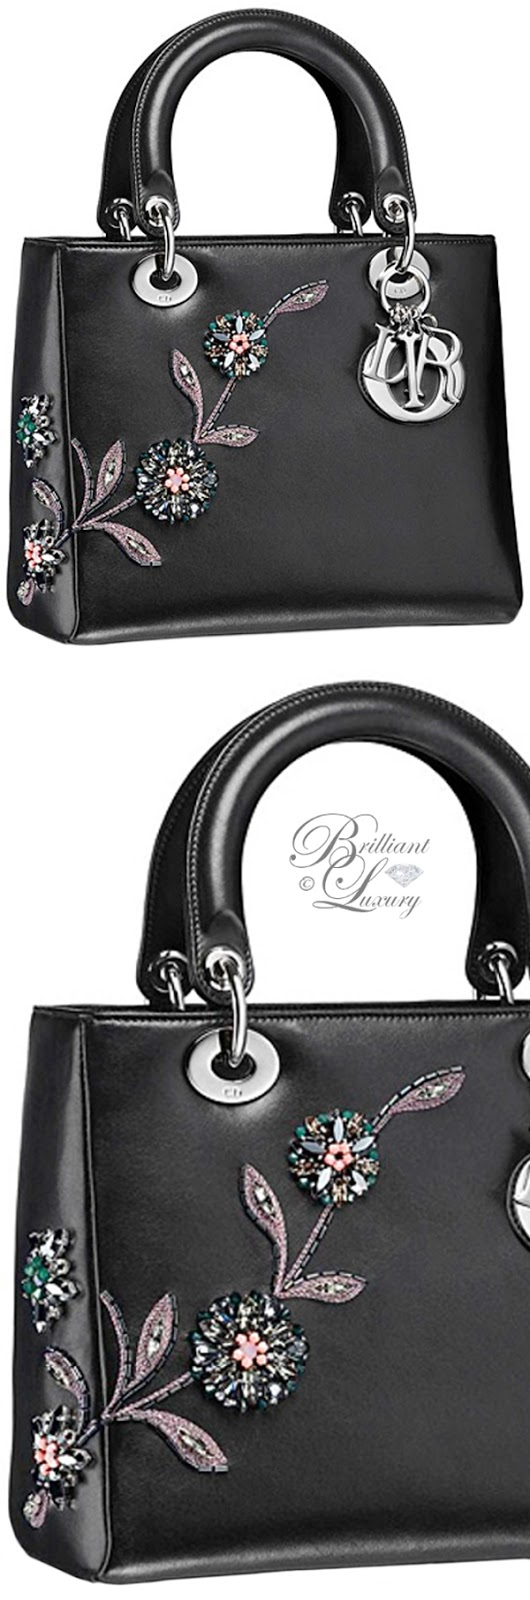 Brilliant Luxury ♦ Lady Dior embroidered black lambskin bag